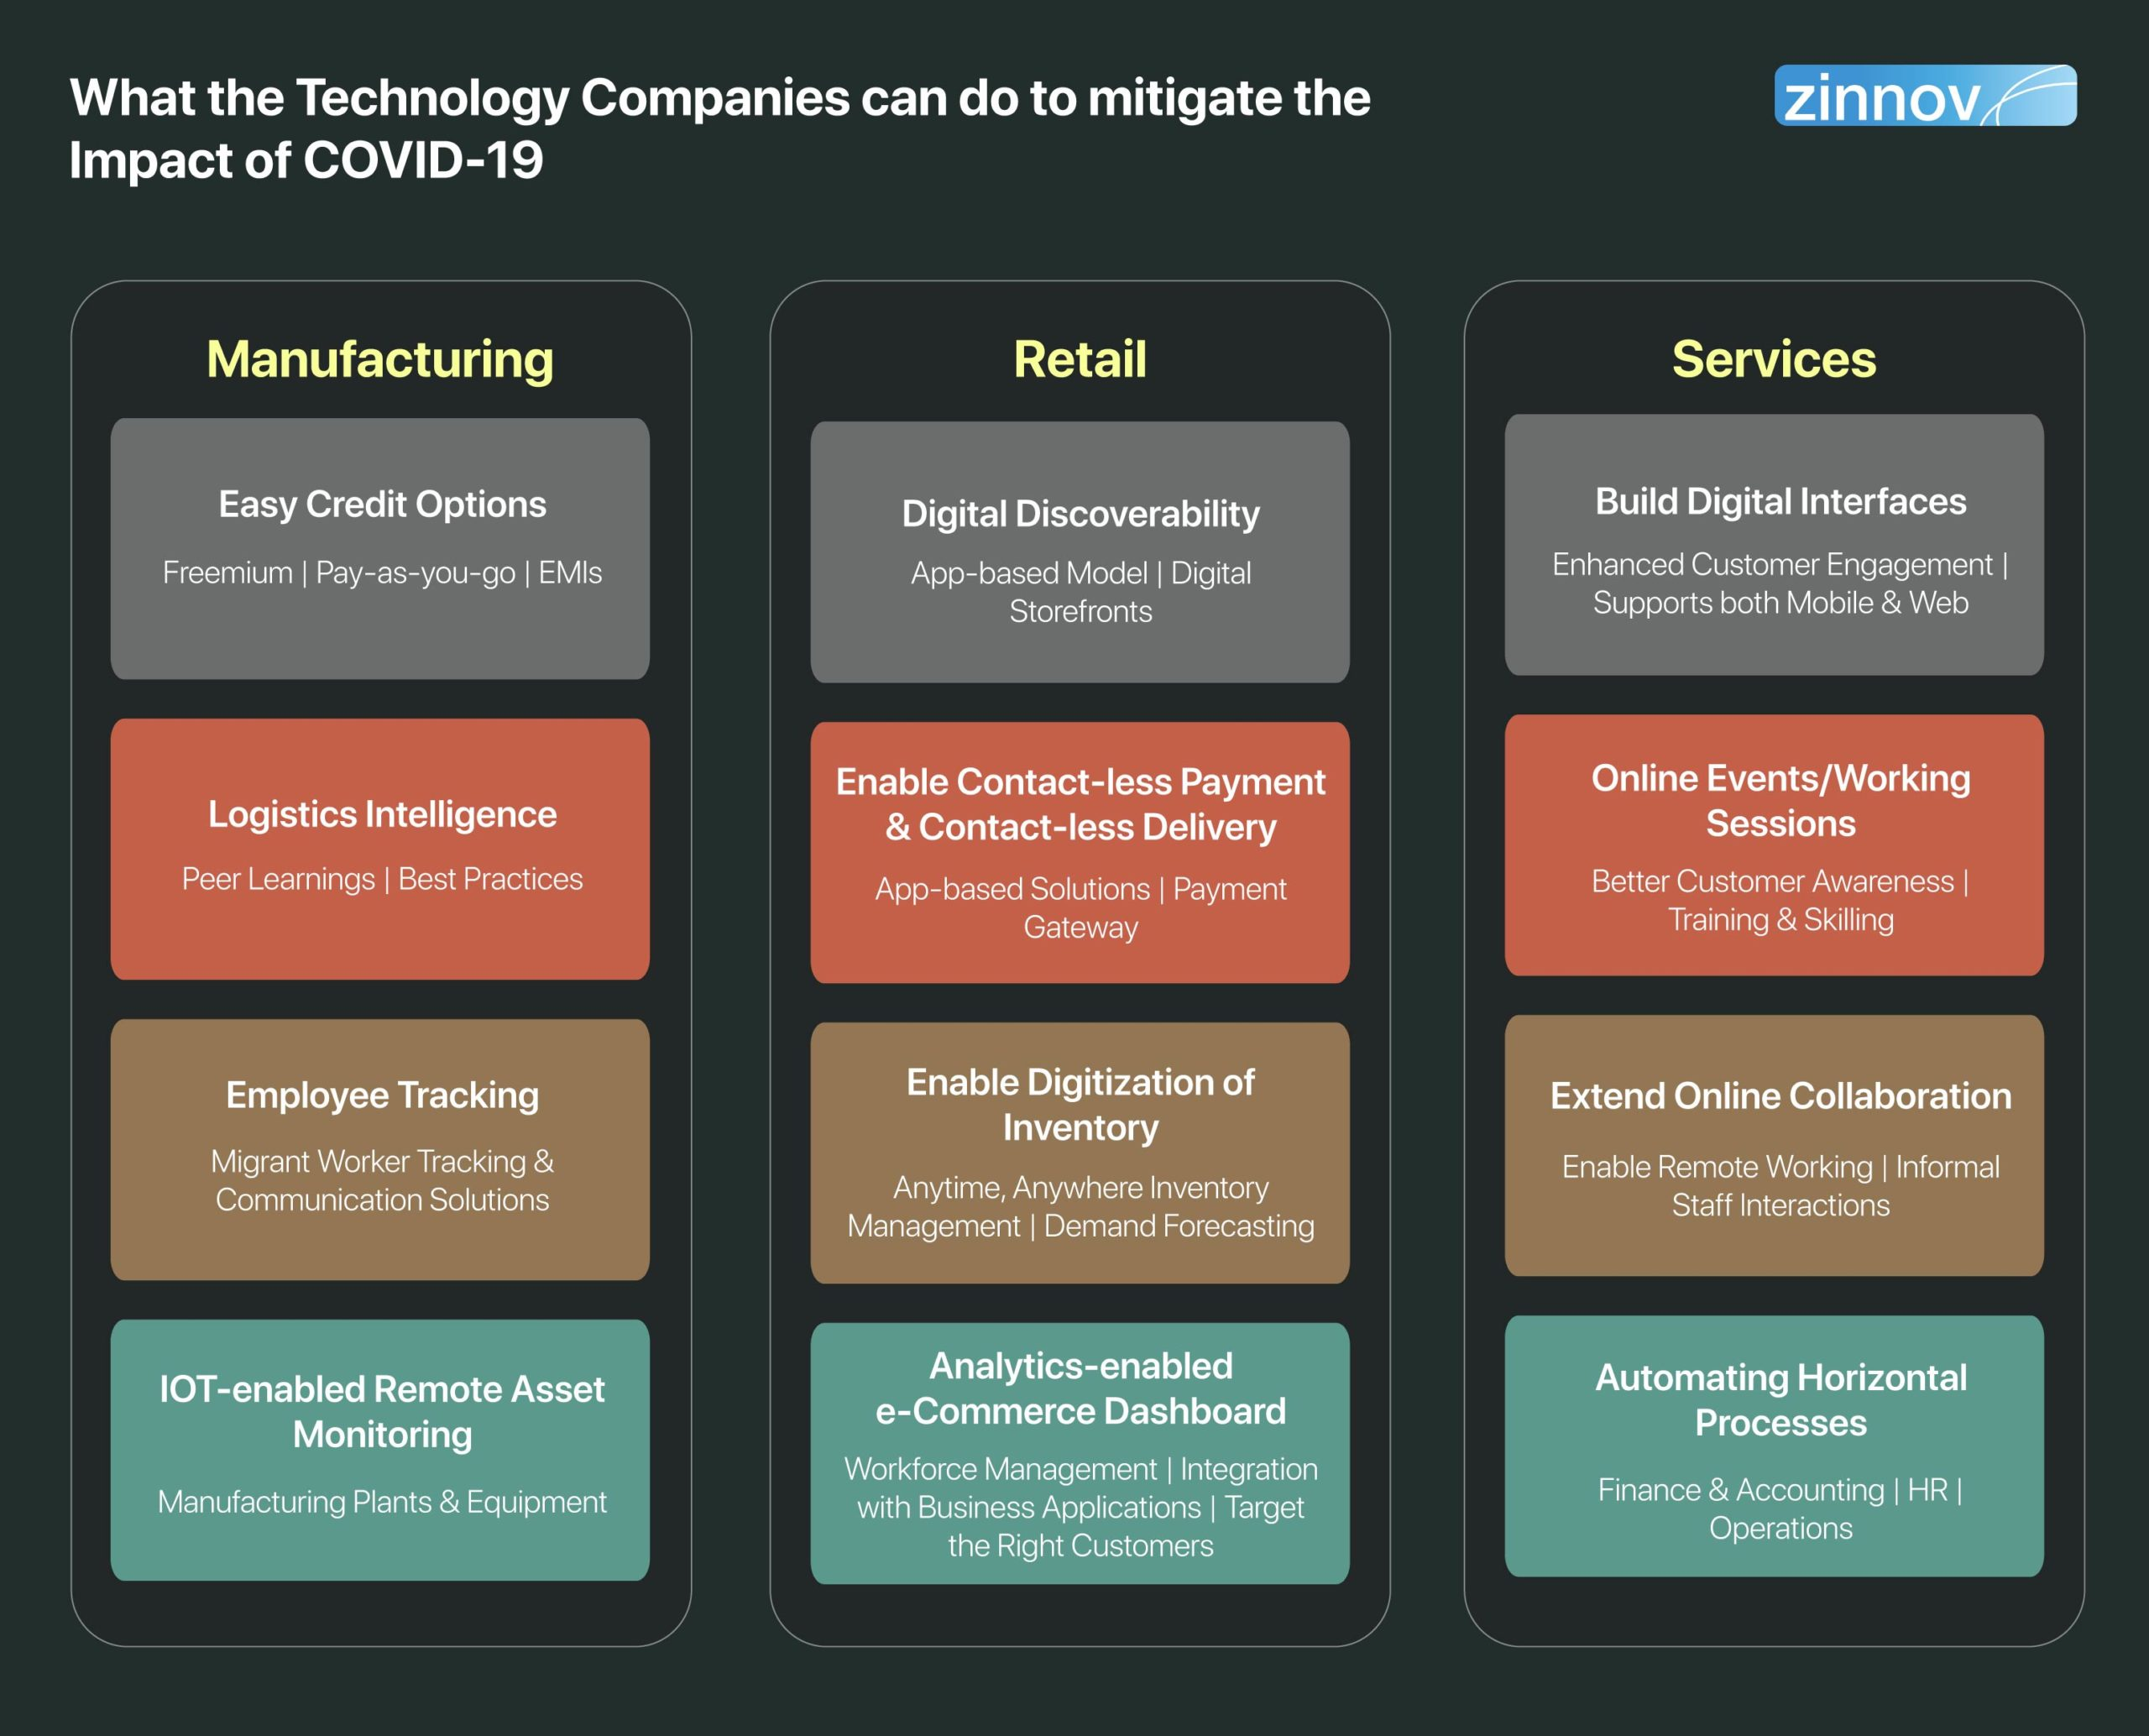 What the Technology Companies can do to mitigate the impact of COVID-19